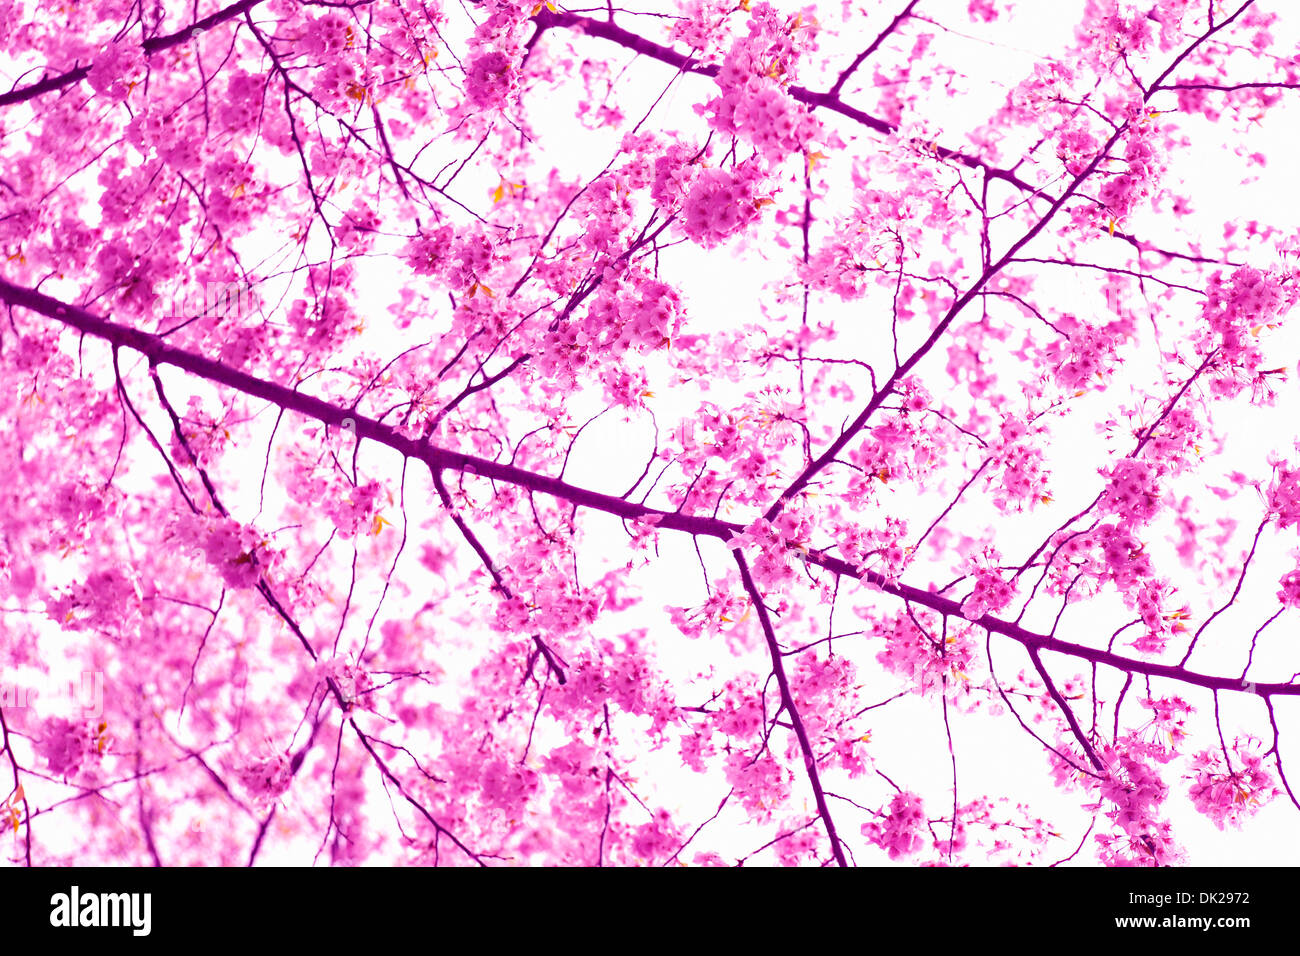 Close up low angle view of pink cherry blossoms on spring branch - Stock Image